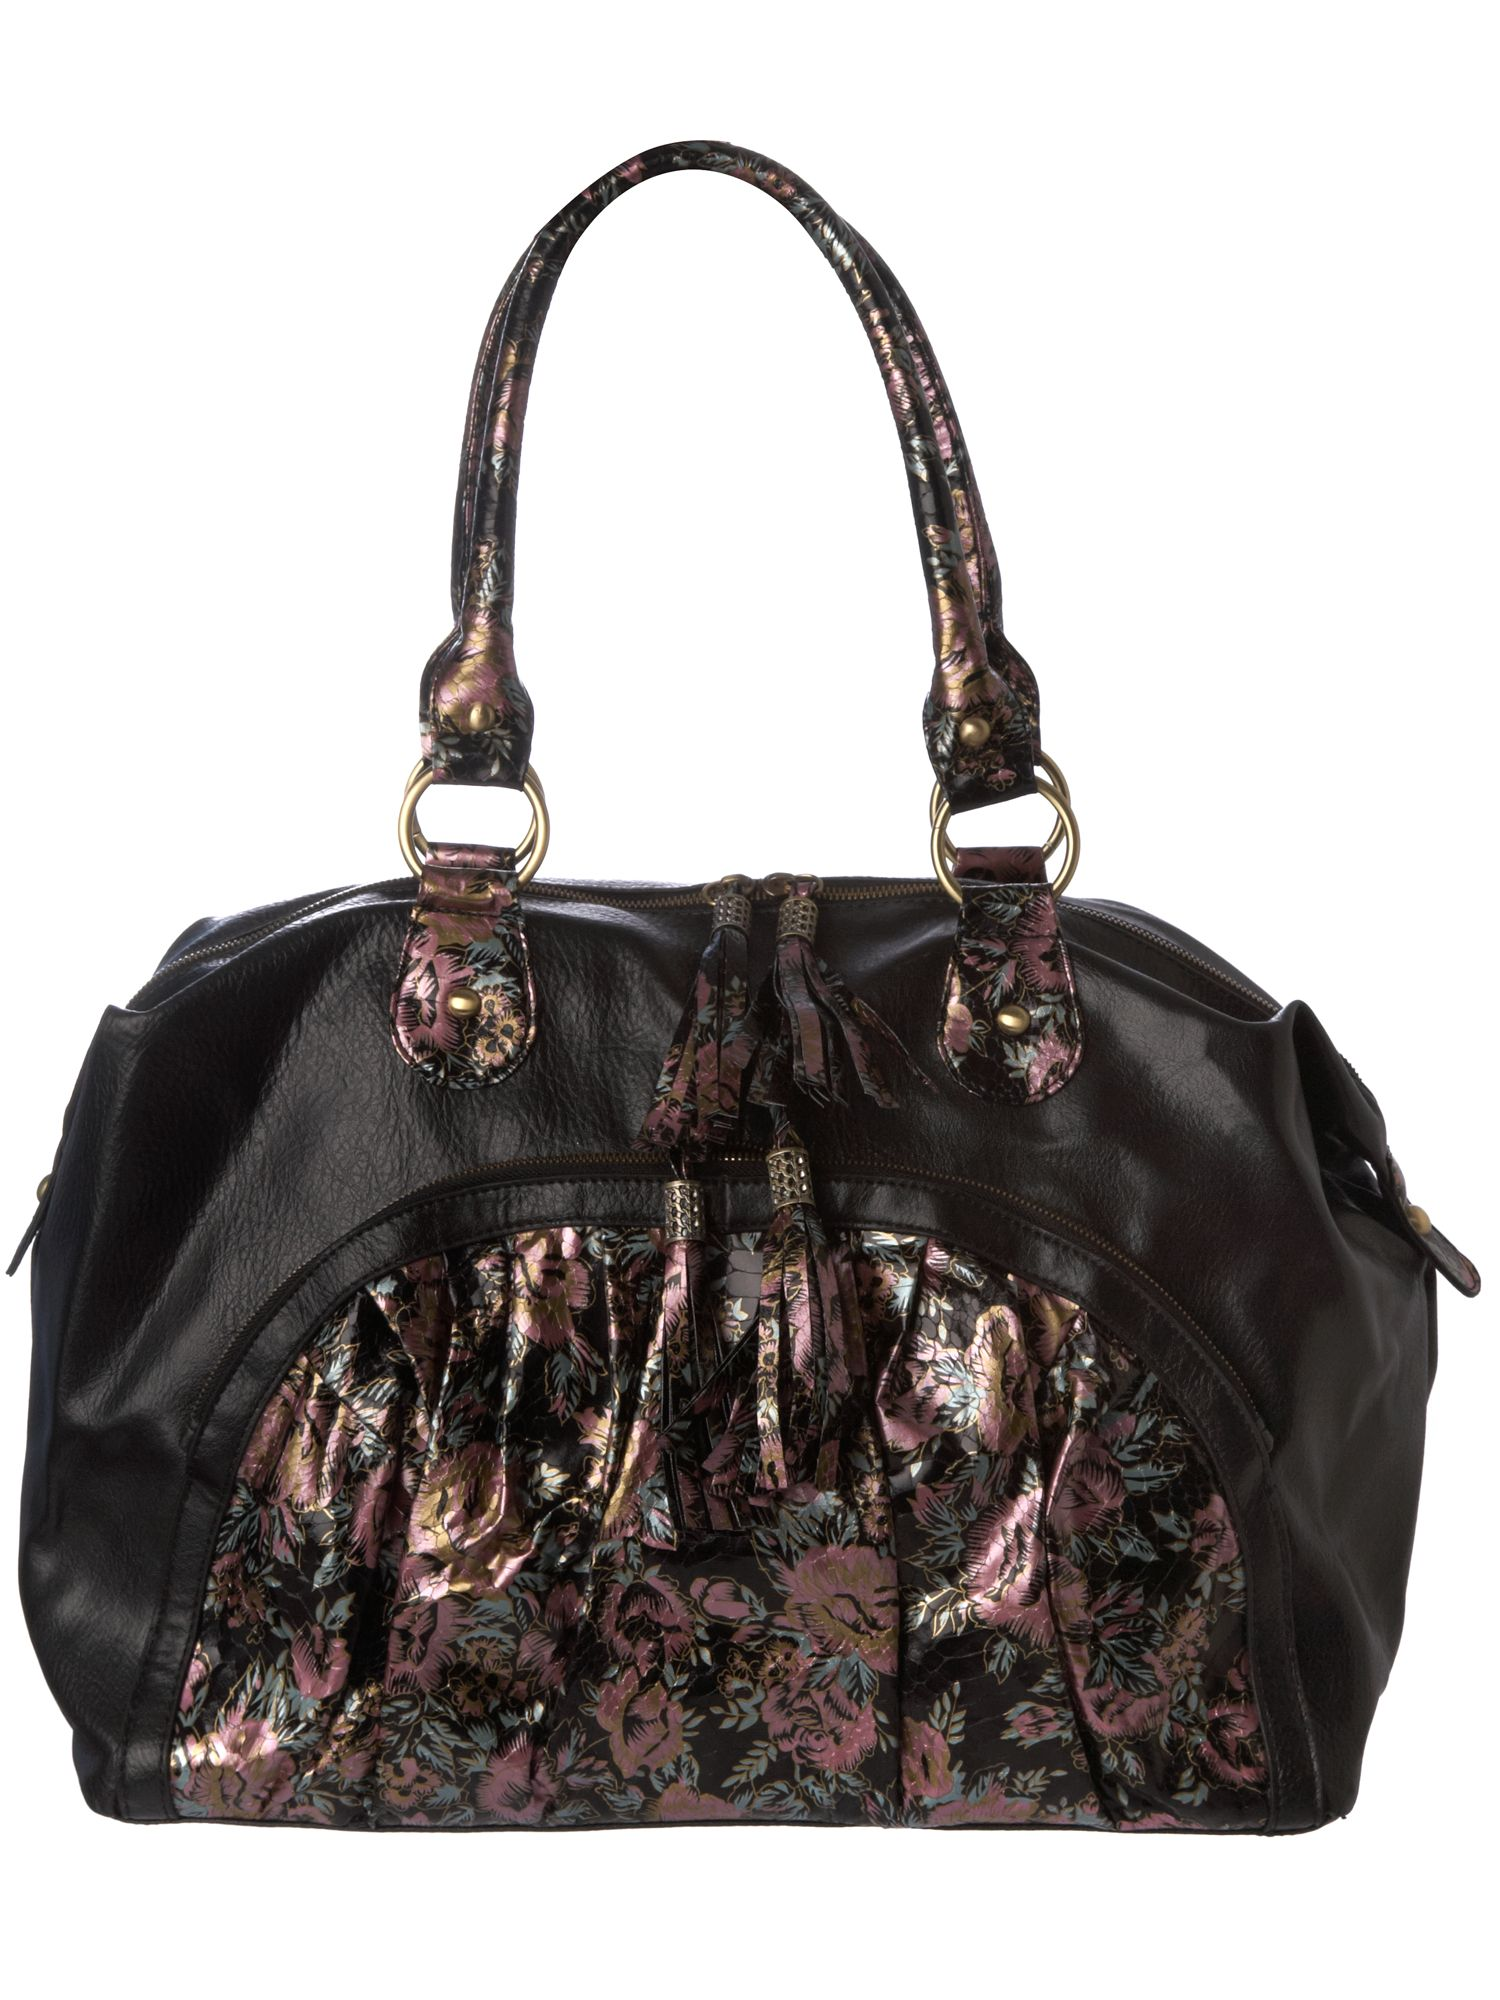 Max C Floral bowling bag product image